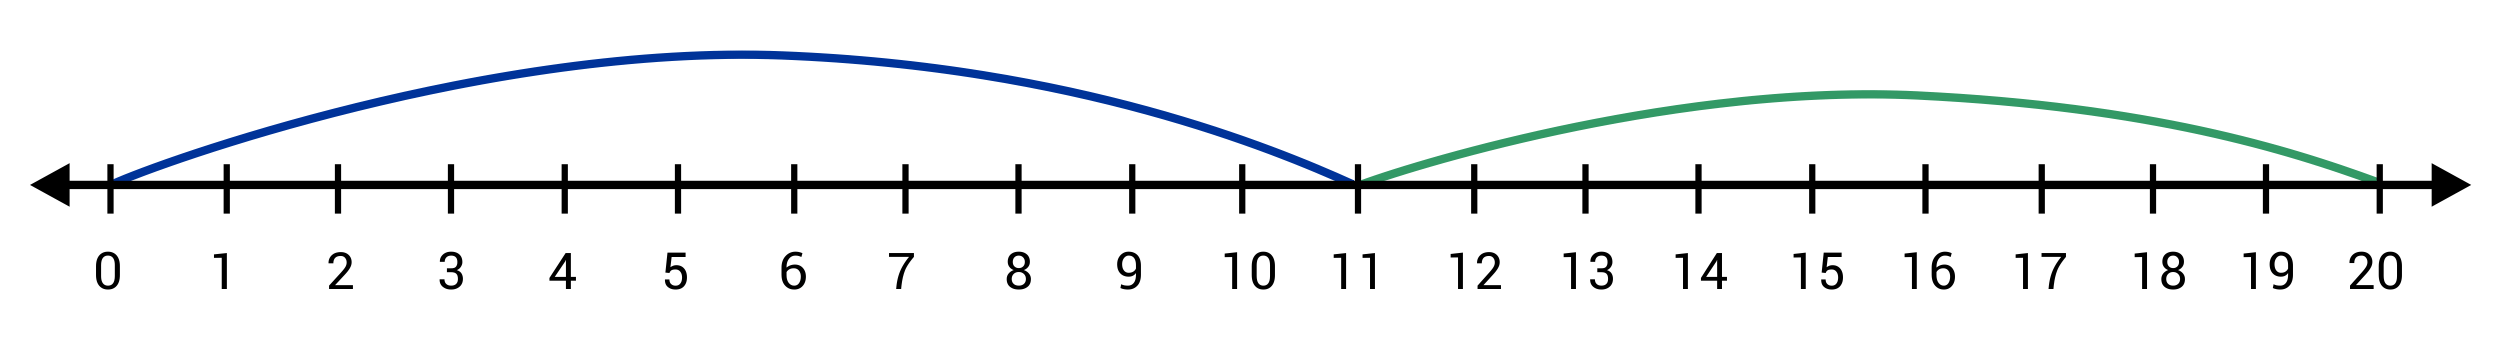 Blue line going from 0 to 11 and green line going from 11 to 20 on number line